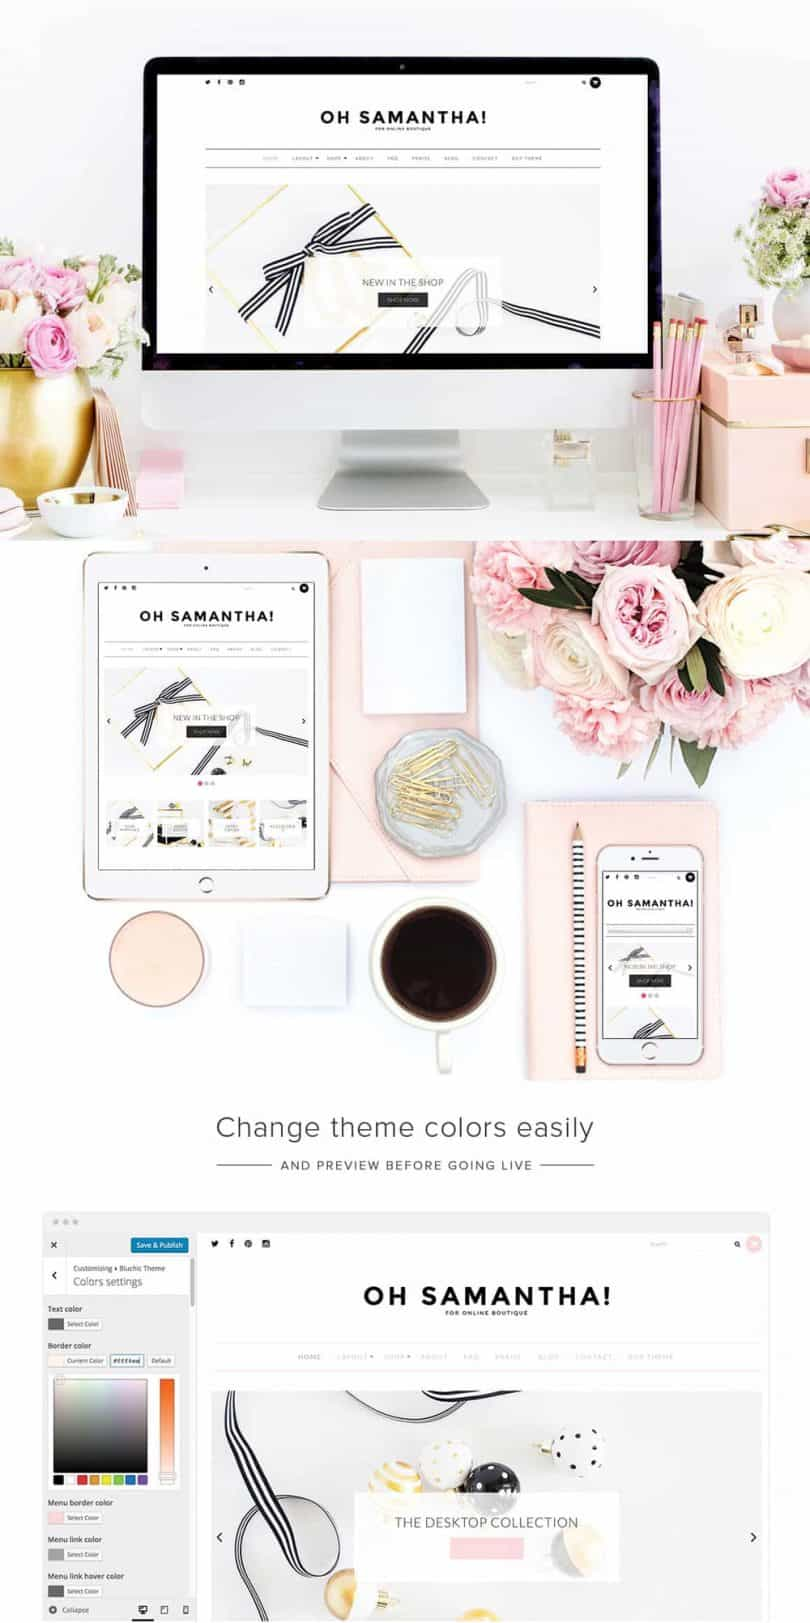 Minimal WordPress theme for bloggers, #girlbosses, and websites